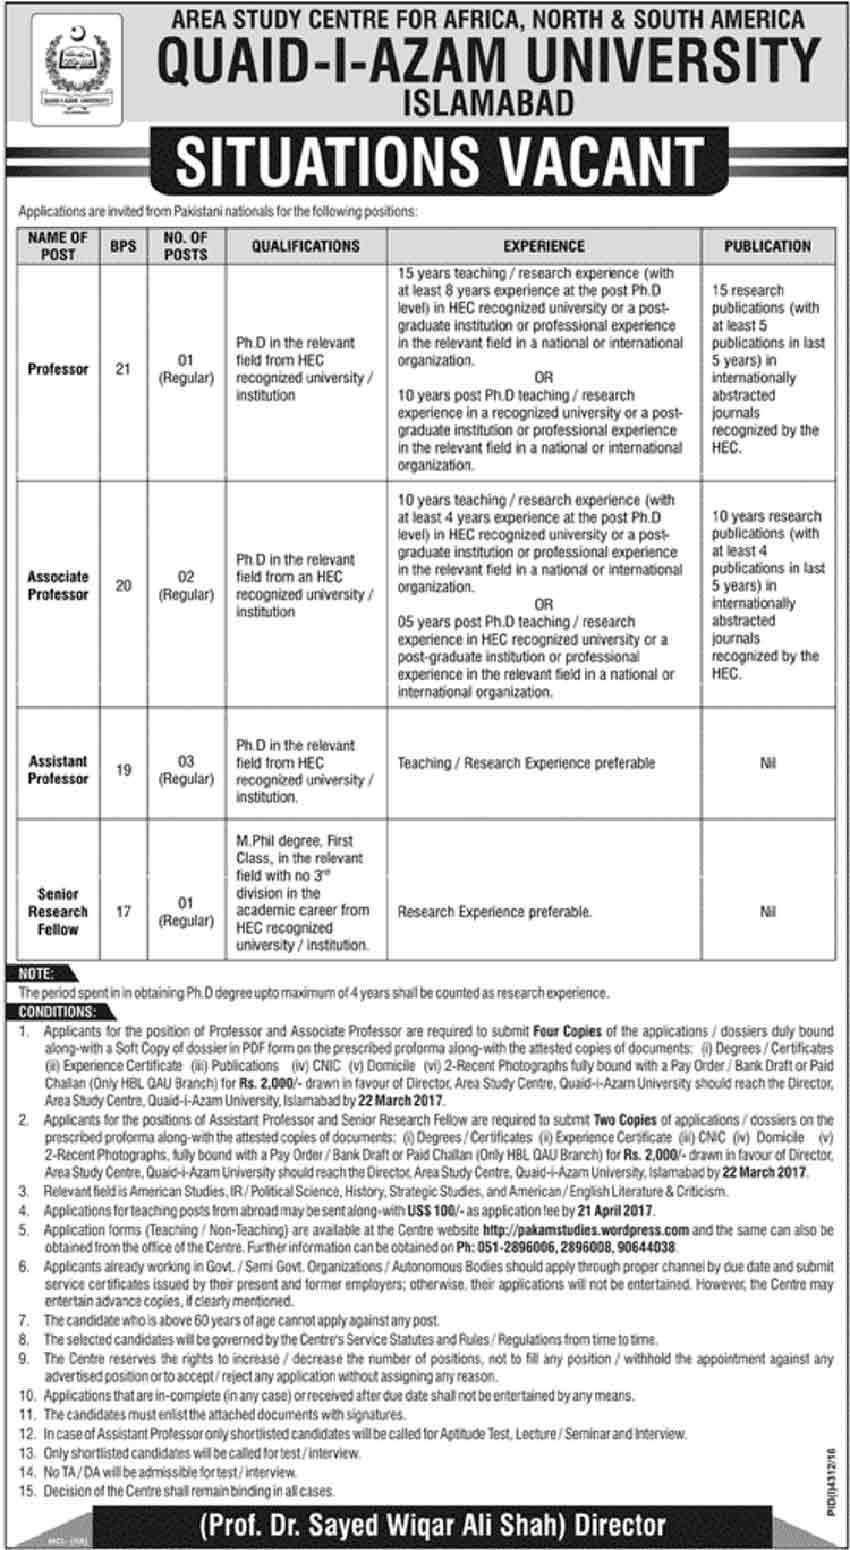 Quaid-e-Azam University Islamabad Jobs 2017